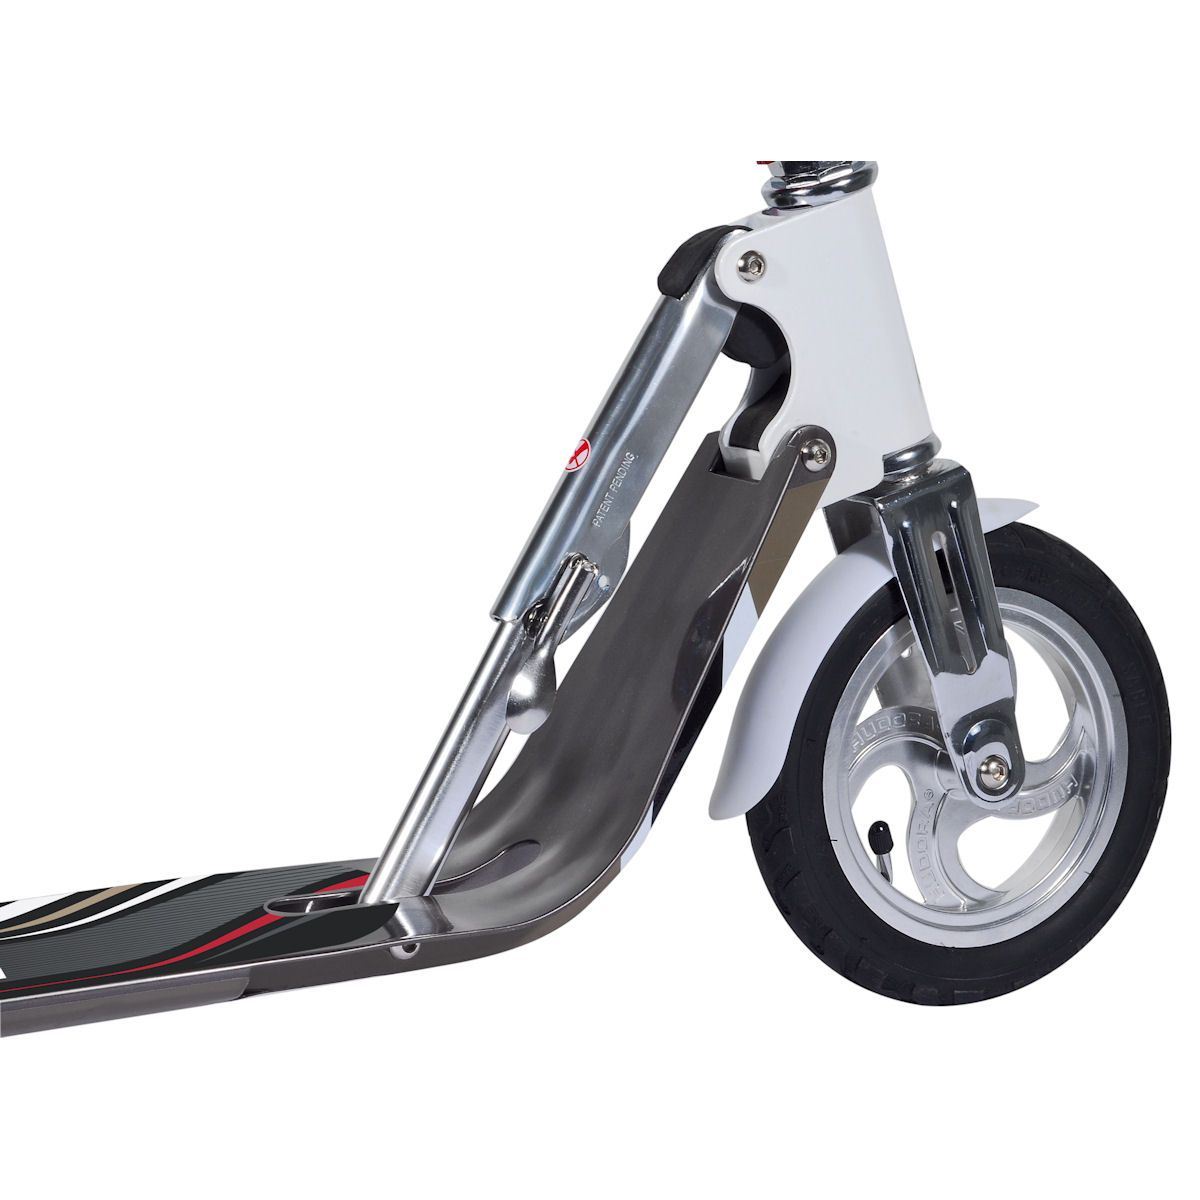 hudora big wheel air 205 scooter mit luftreifen roller. Black Bedroom Furniture Sets. Home Design Ideas